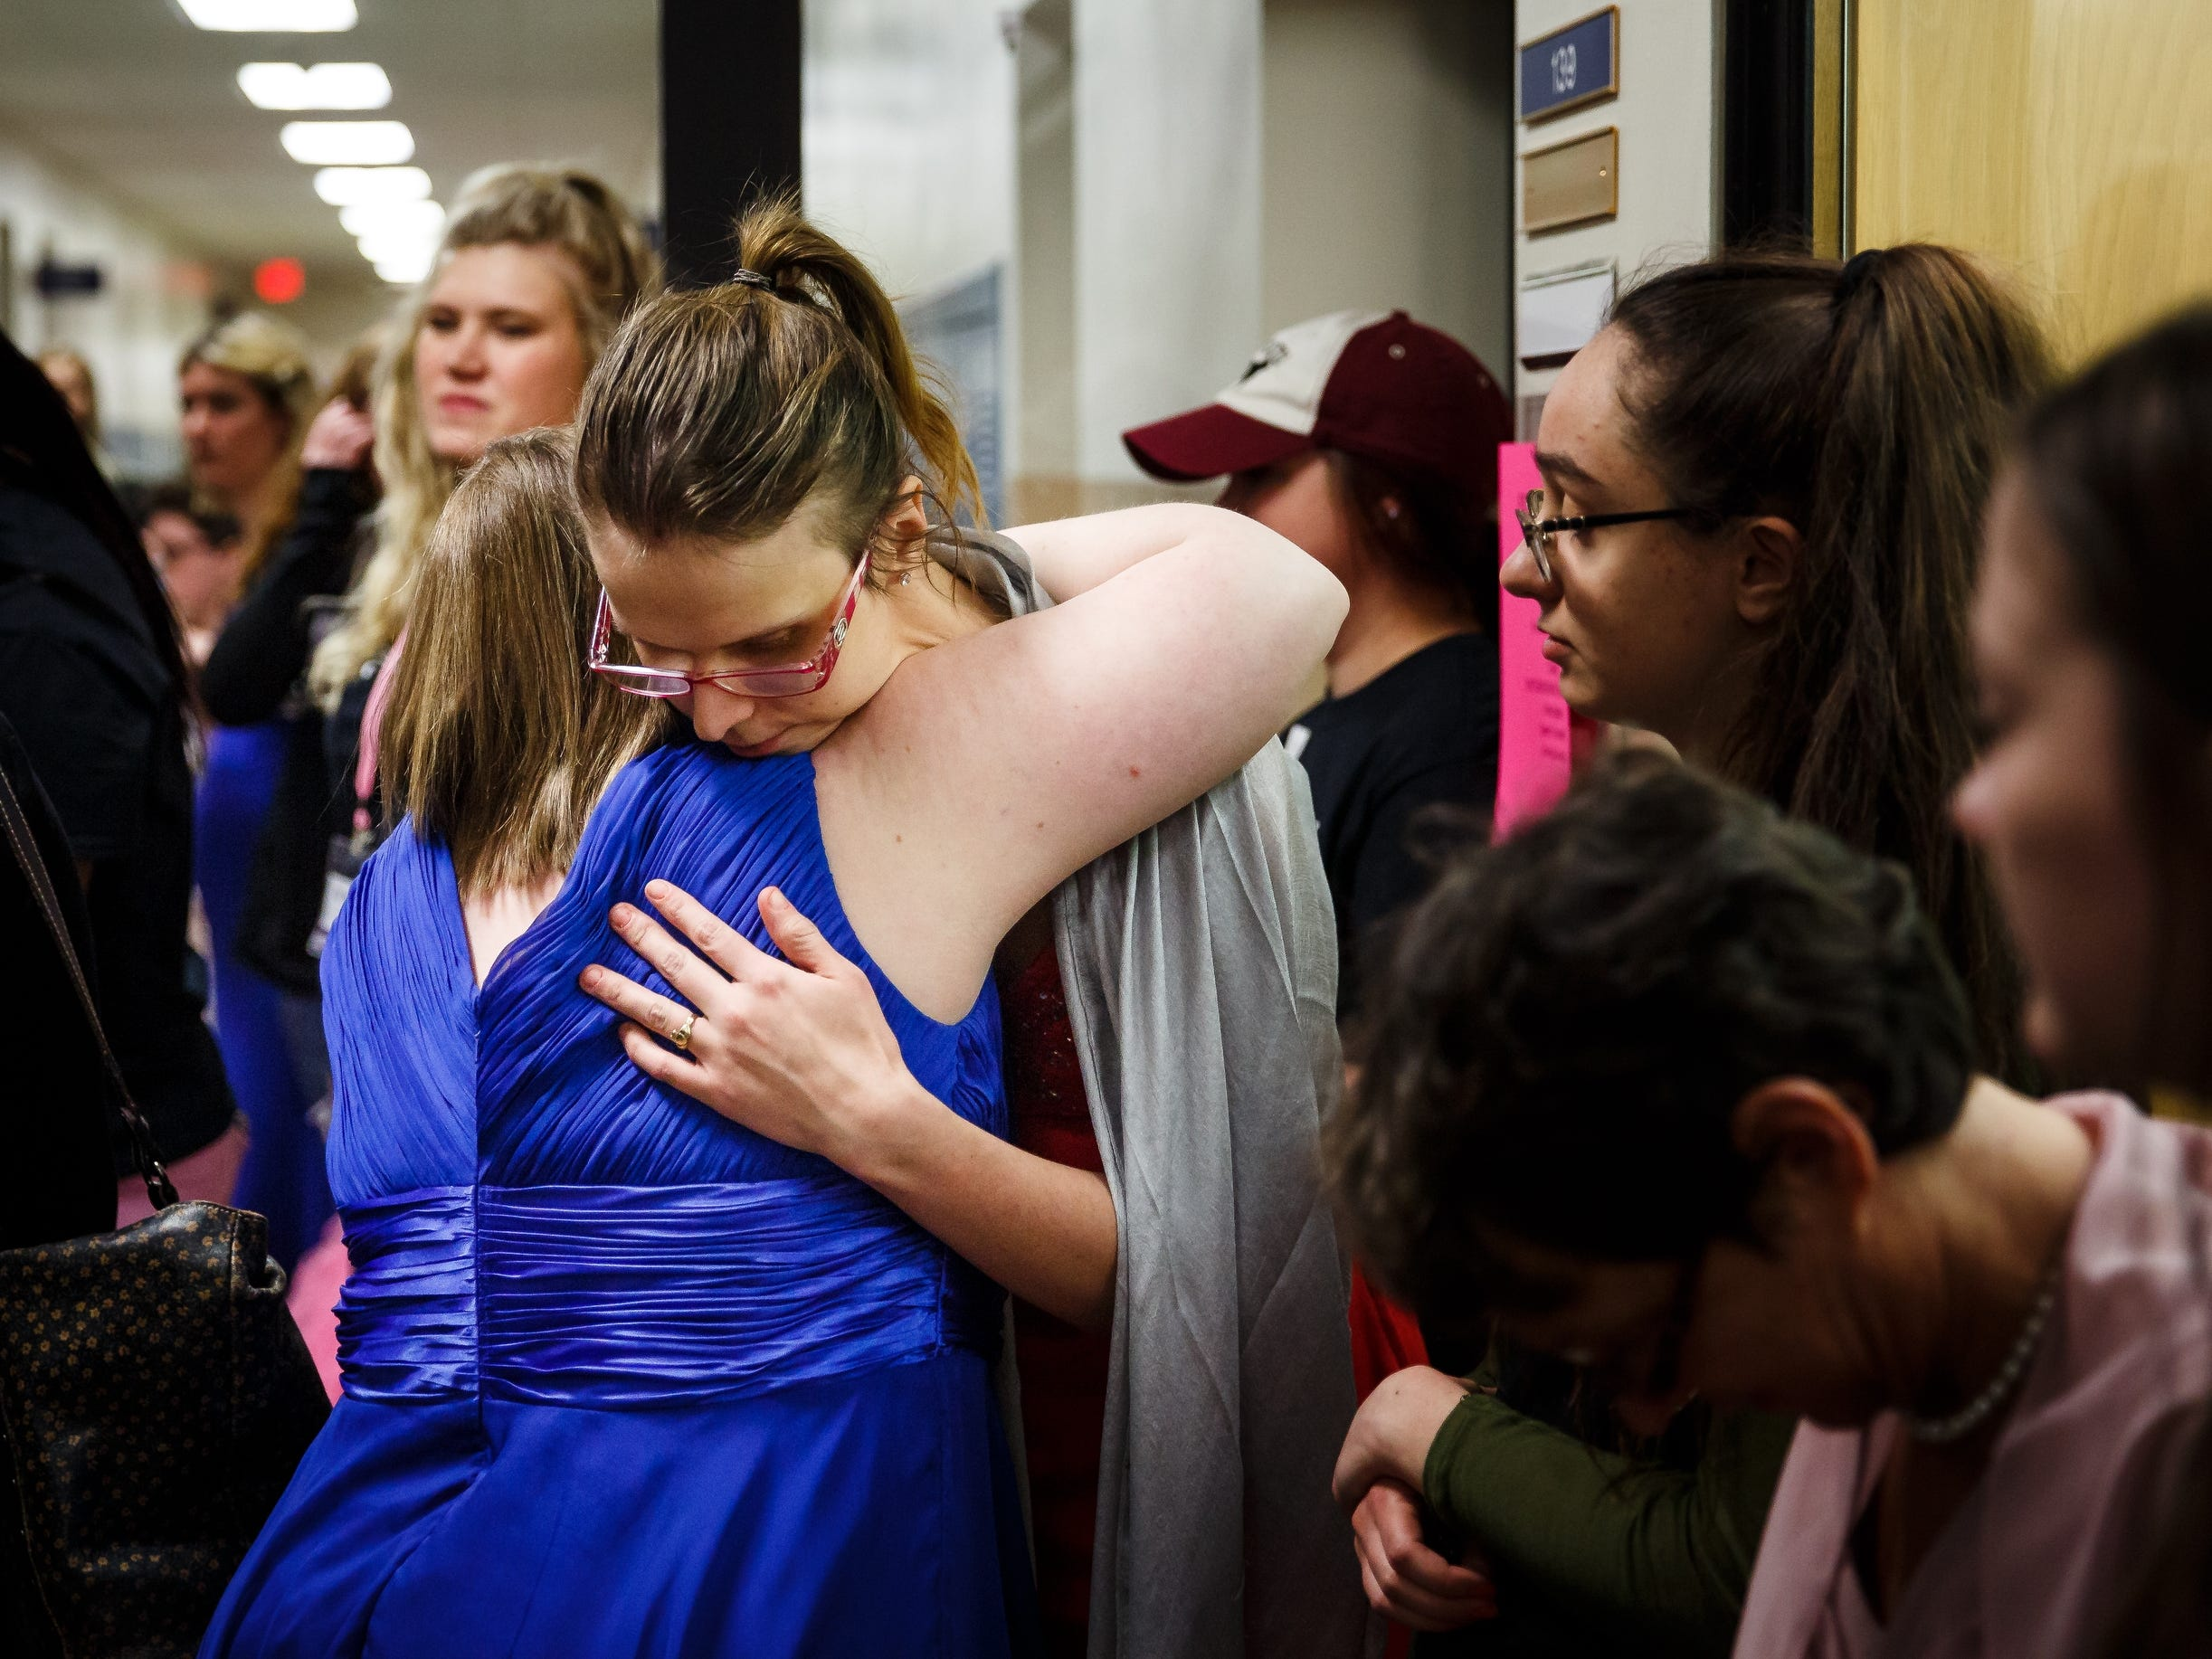 Amy Lukenbill, 33 of Altoona, right, gets a hug from Annie Woiwood, 25 of Des Moine, left, as they wait for results in the 2019 Miss Amazing pageant at Franklin Jr. High School on Saturday, April 13, 2019, in Des Moines.